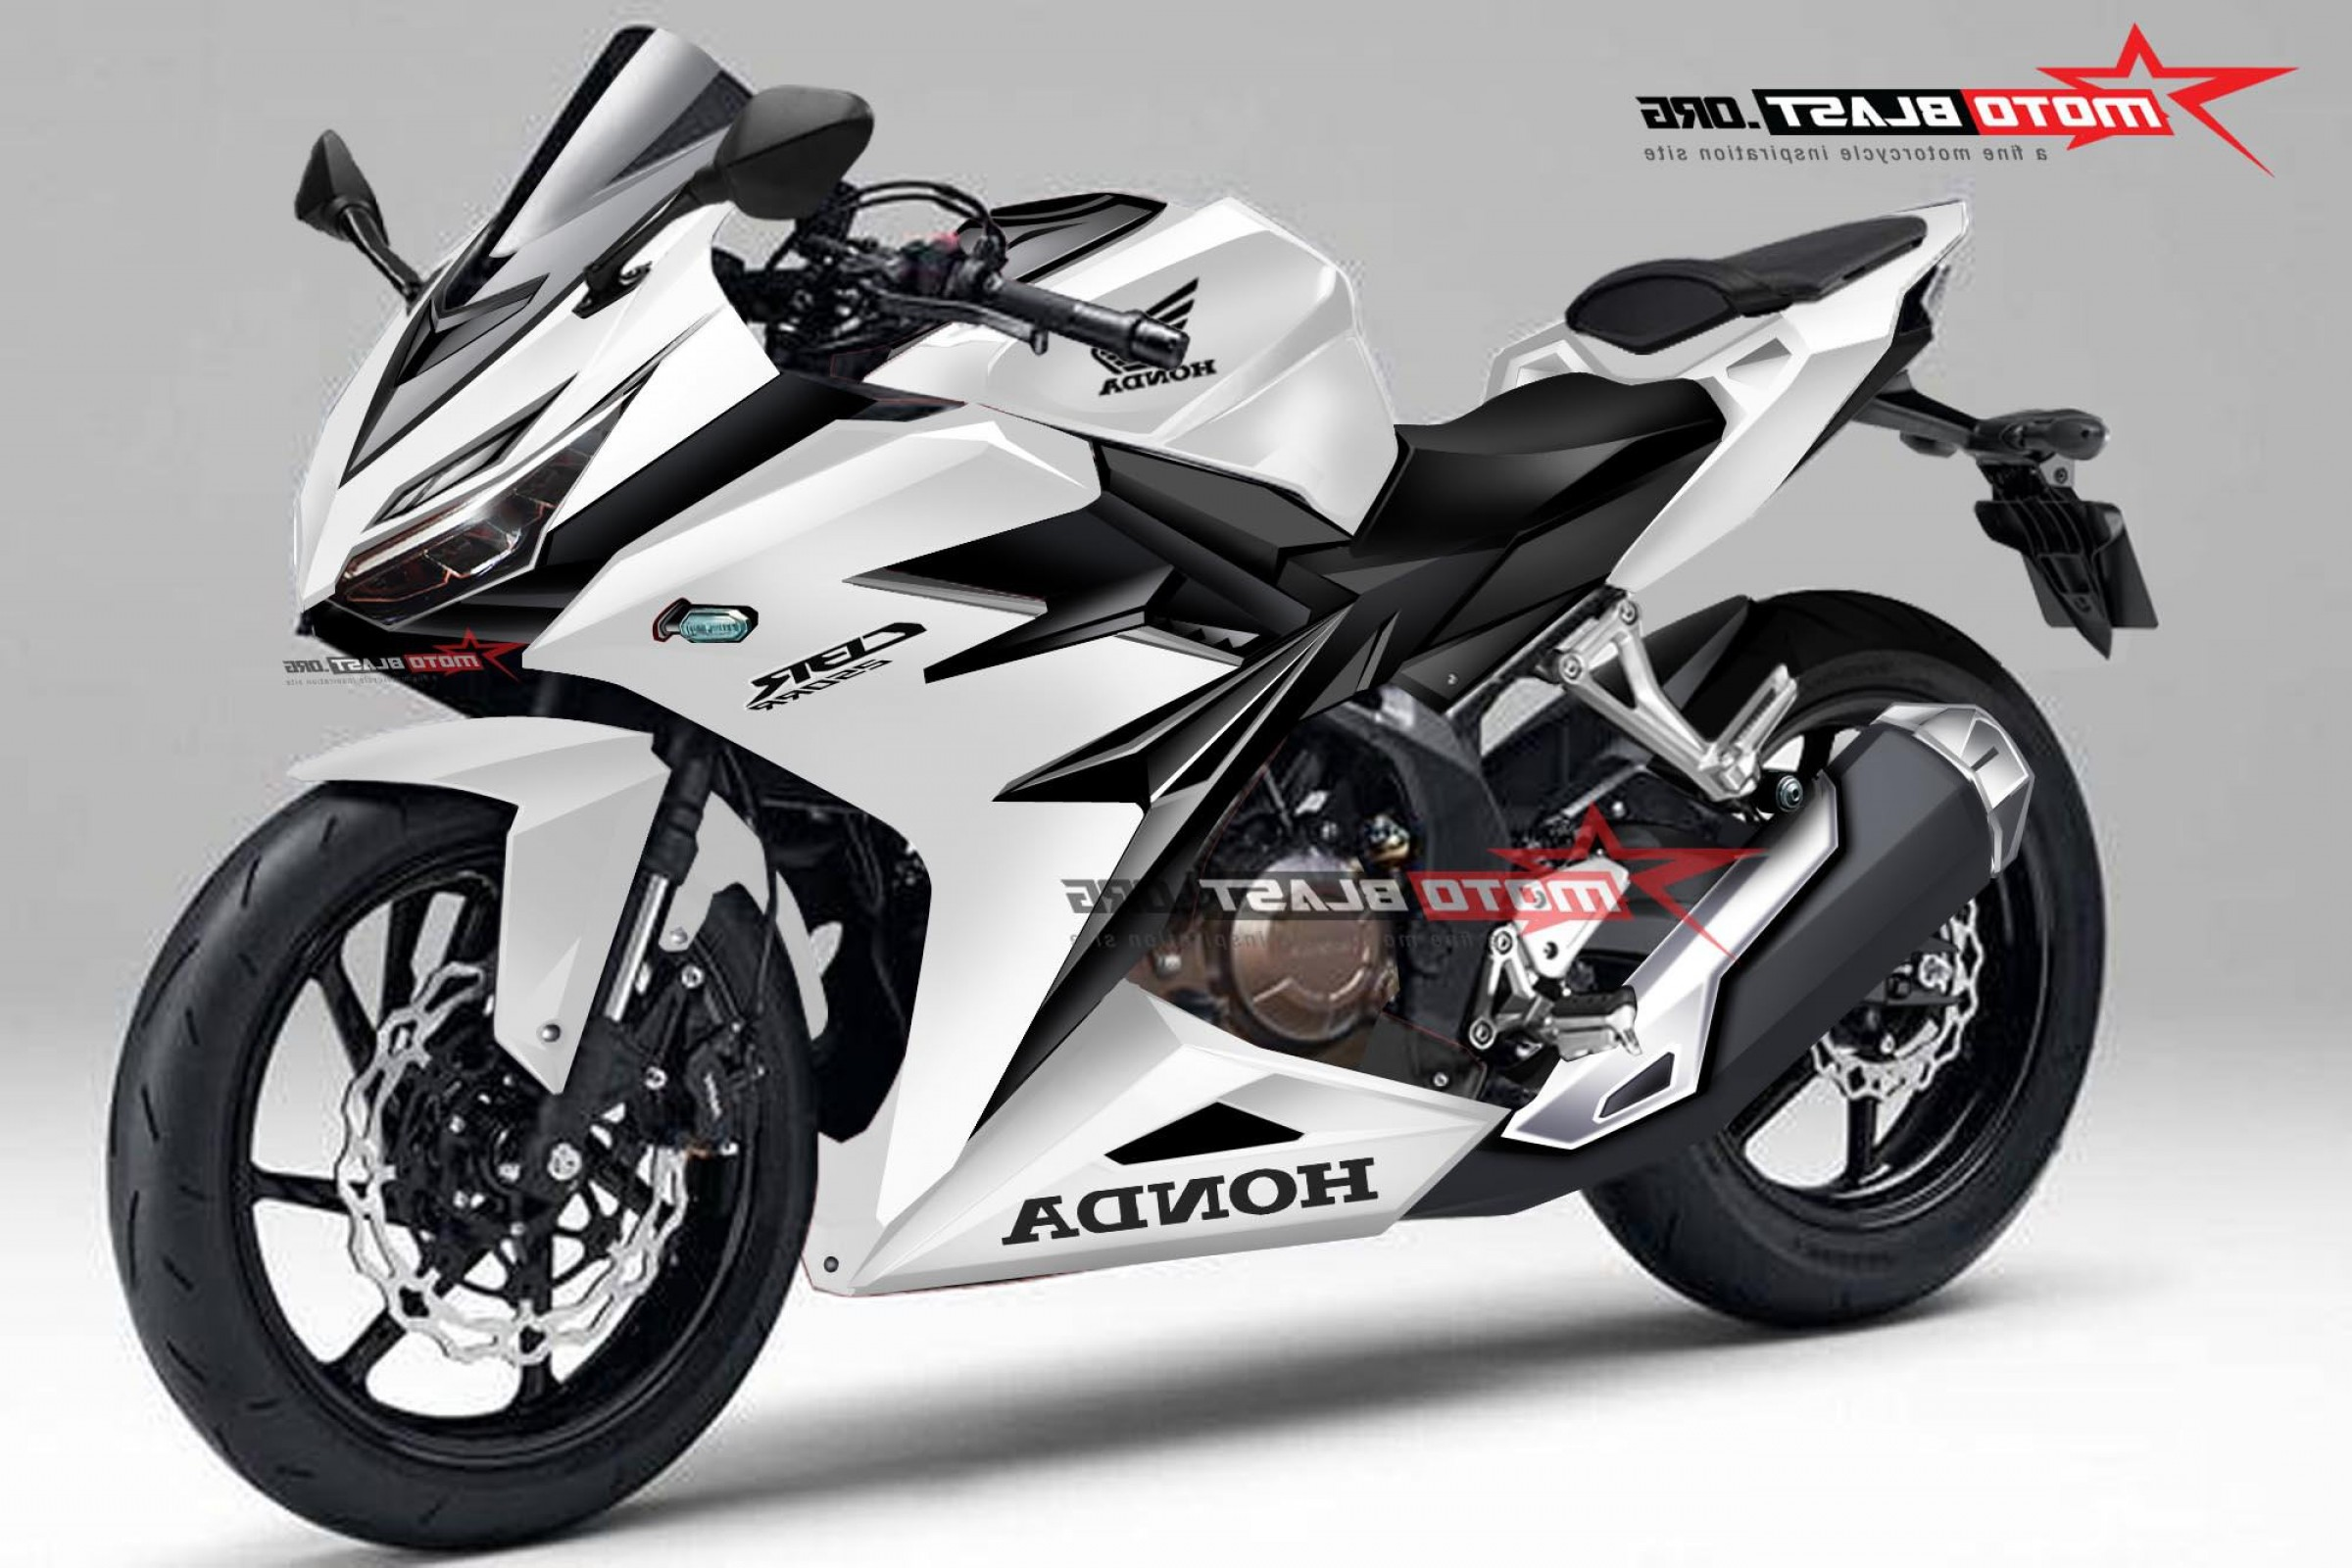 2016 Yamaha Vector: Honda Cbr Sport Bike Motorcycle Concept Cbrrr Cbrrr Cbrrr Light Weight Super Sport Pictures